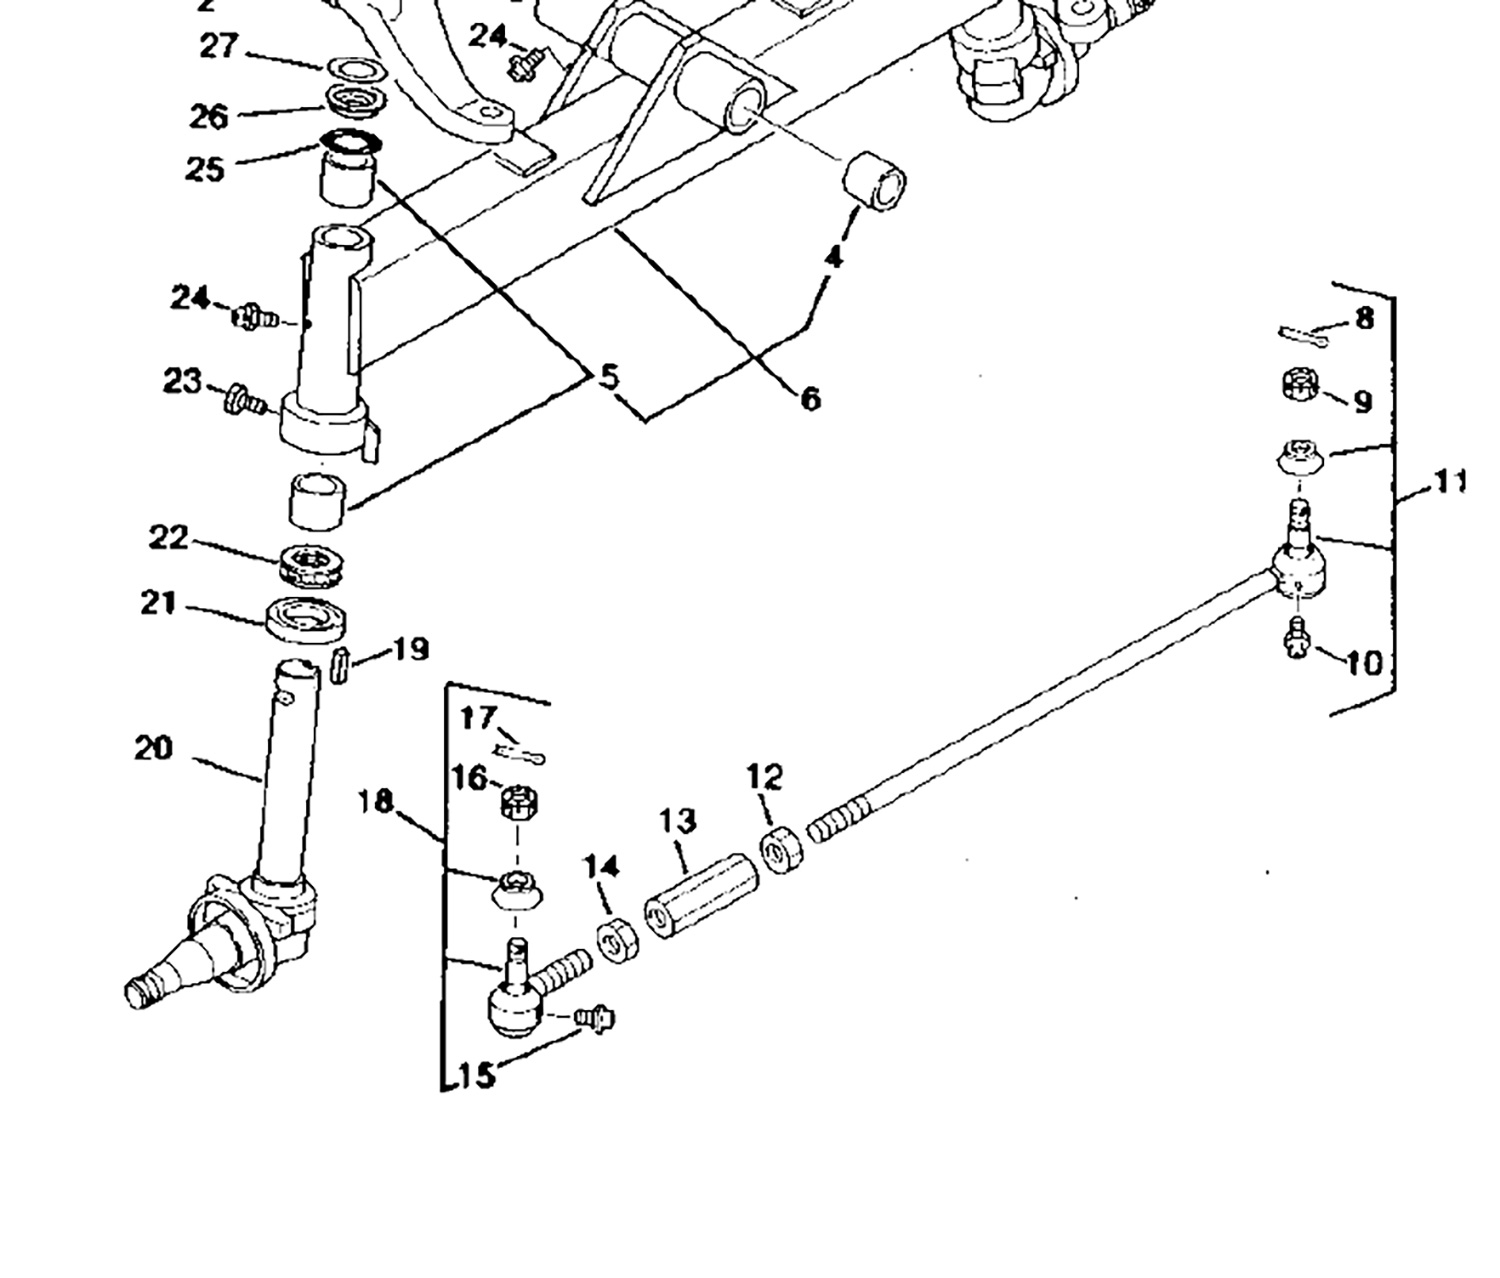 John Deere Parts Diagram